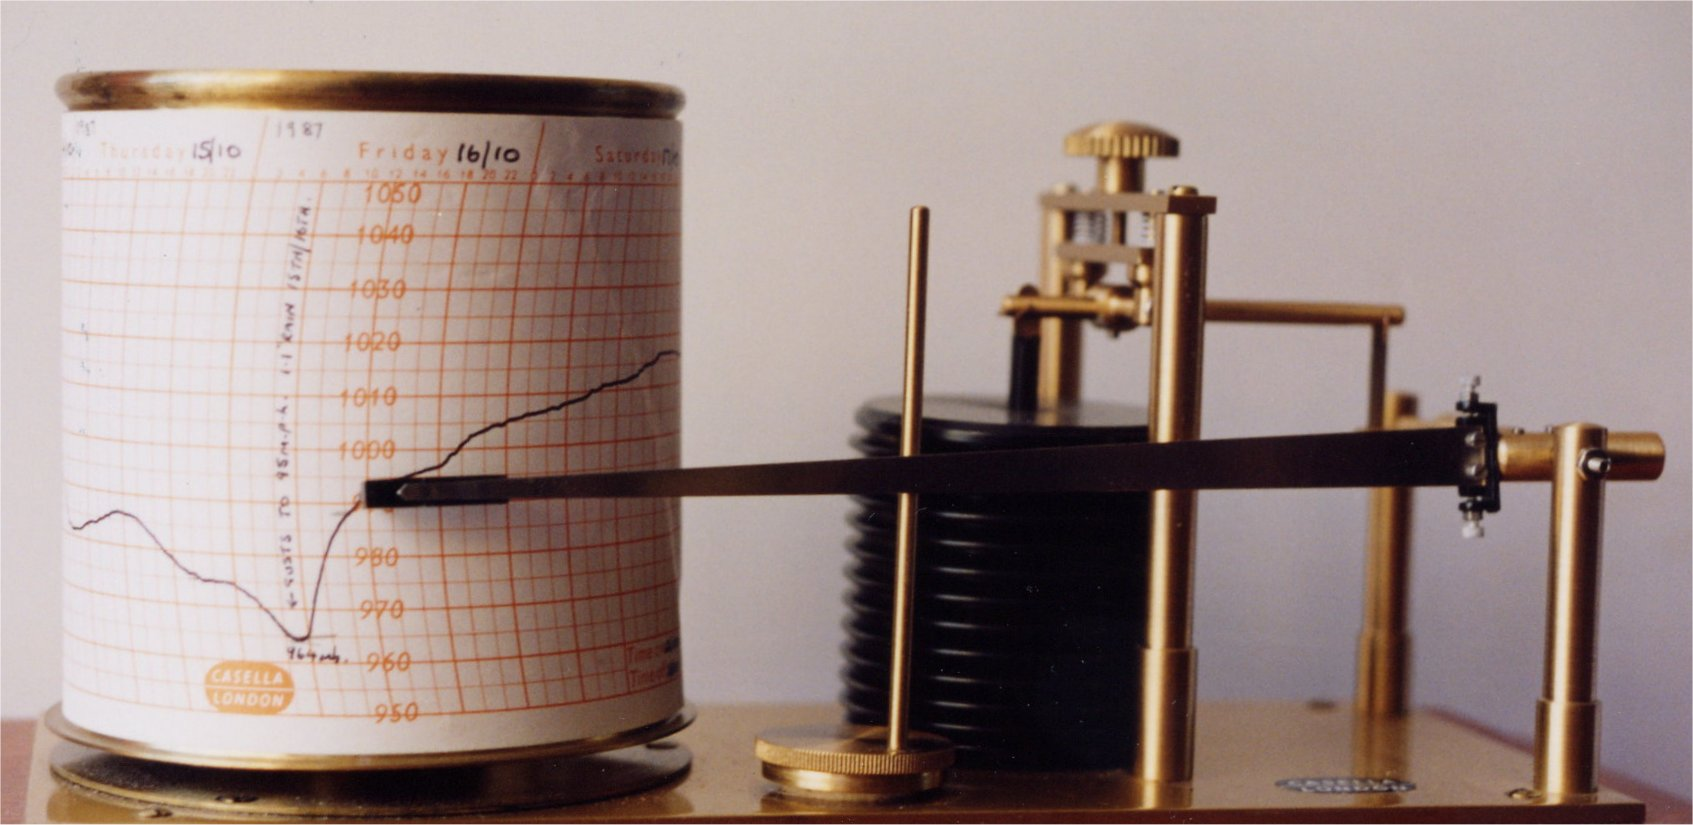 Epping Weather Site Barograph